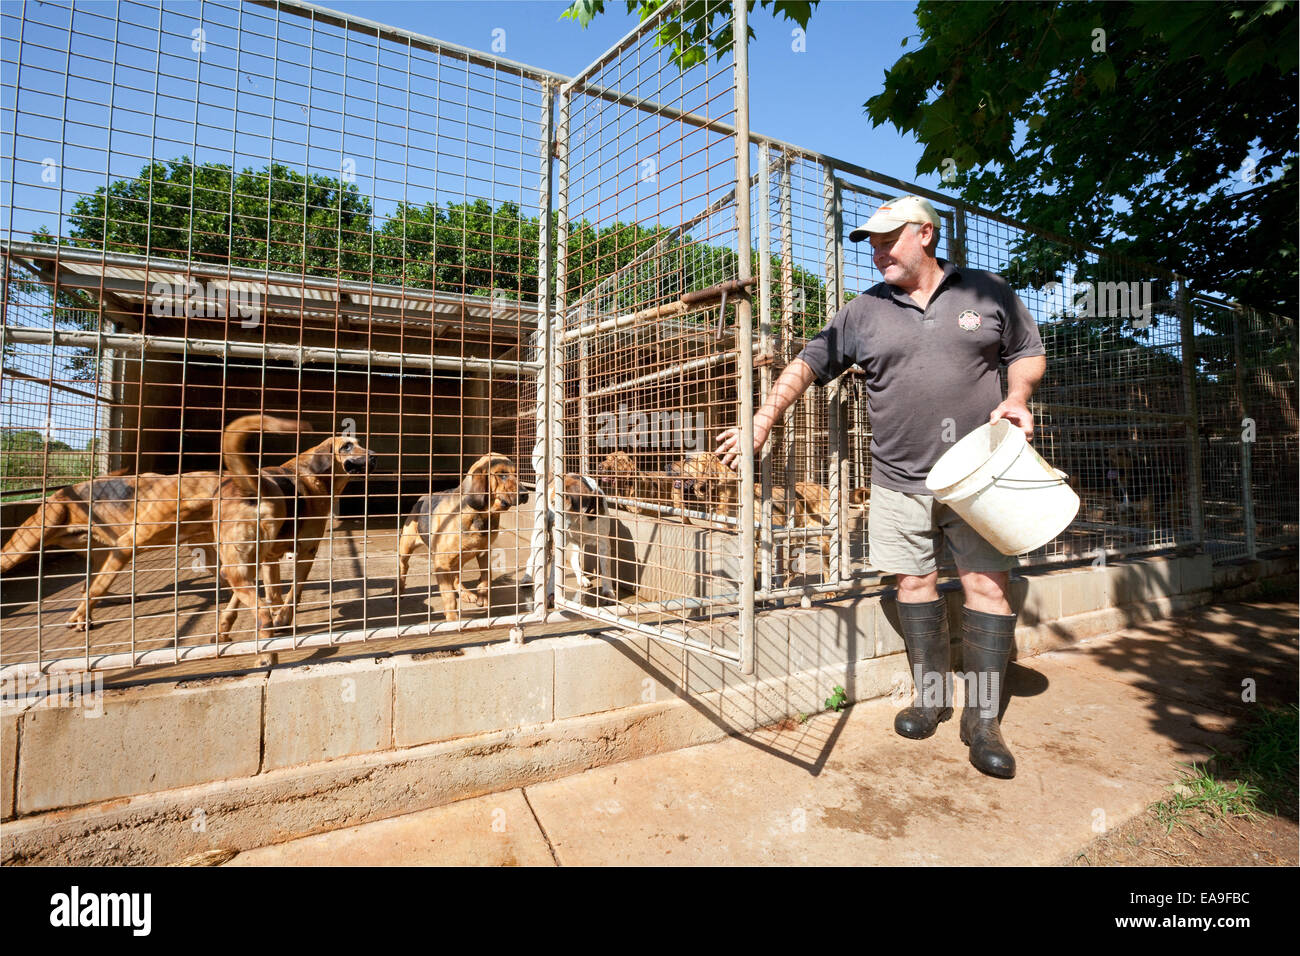 Summerland Serums - Steve Murray feeds the dogs - Stock Image